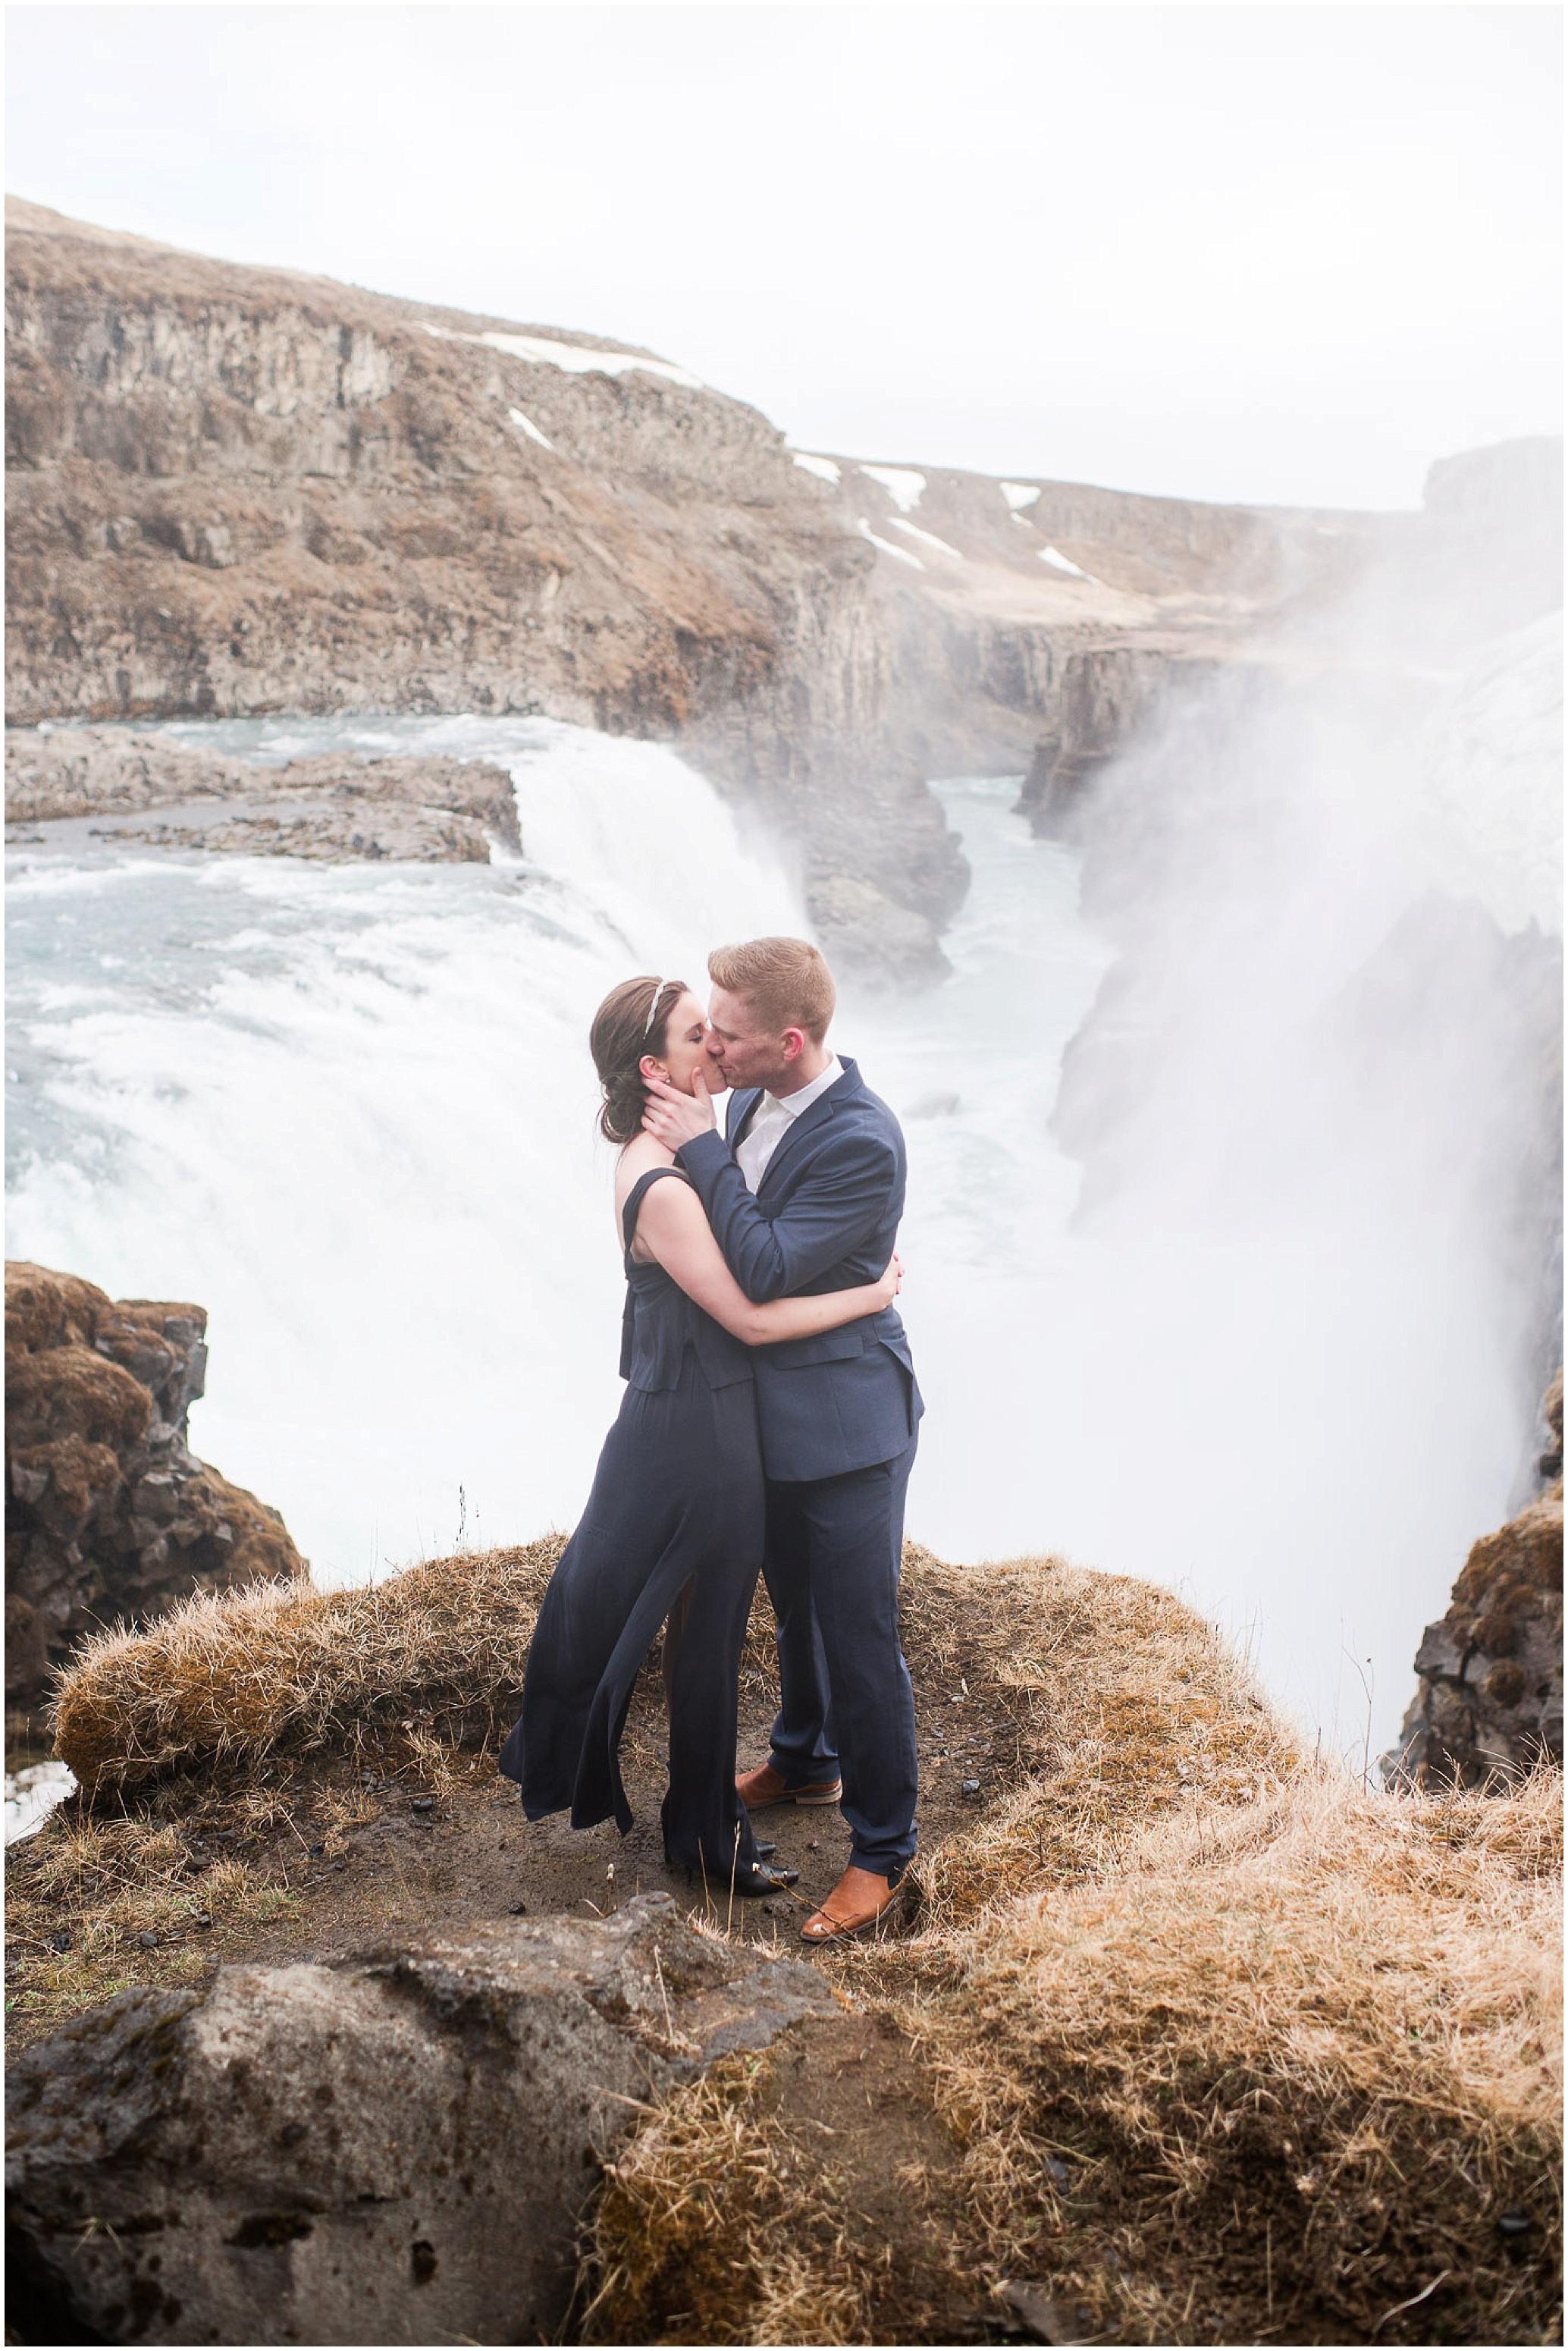 Hannah Leigh Photography Iceland Elopement Photographer_0136.jpg